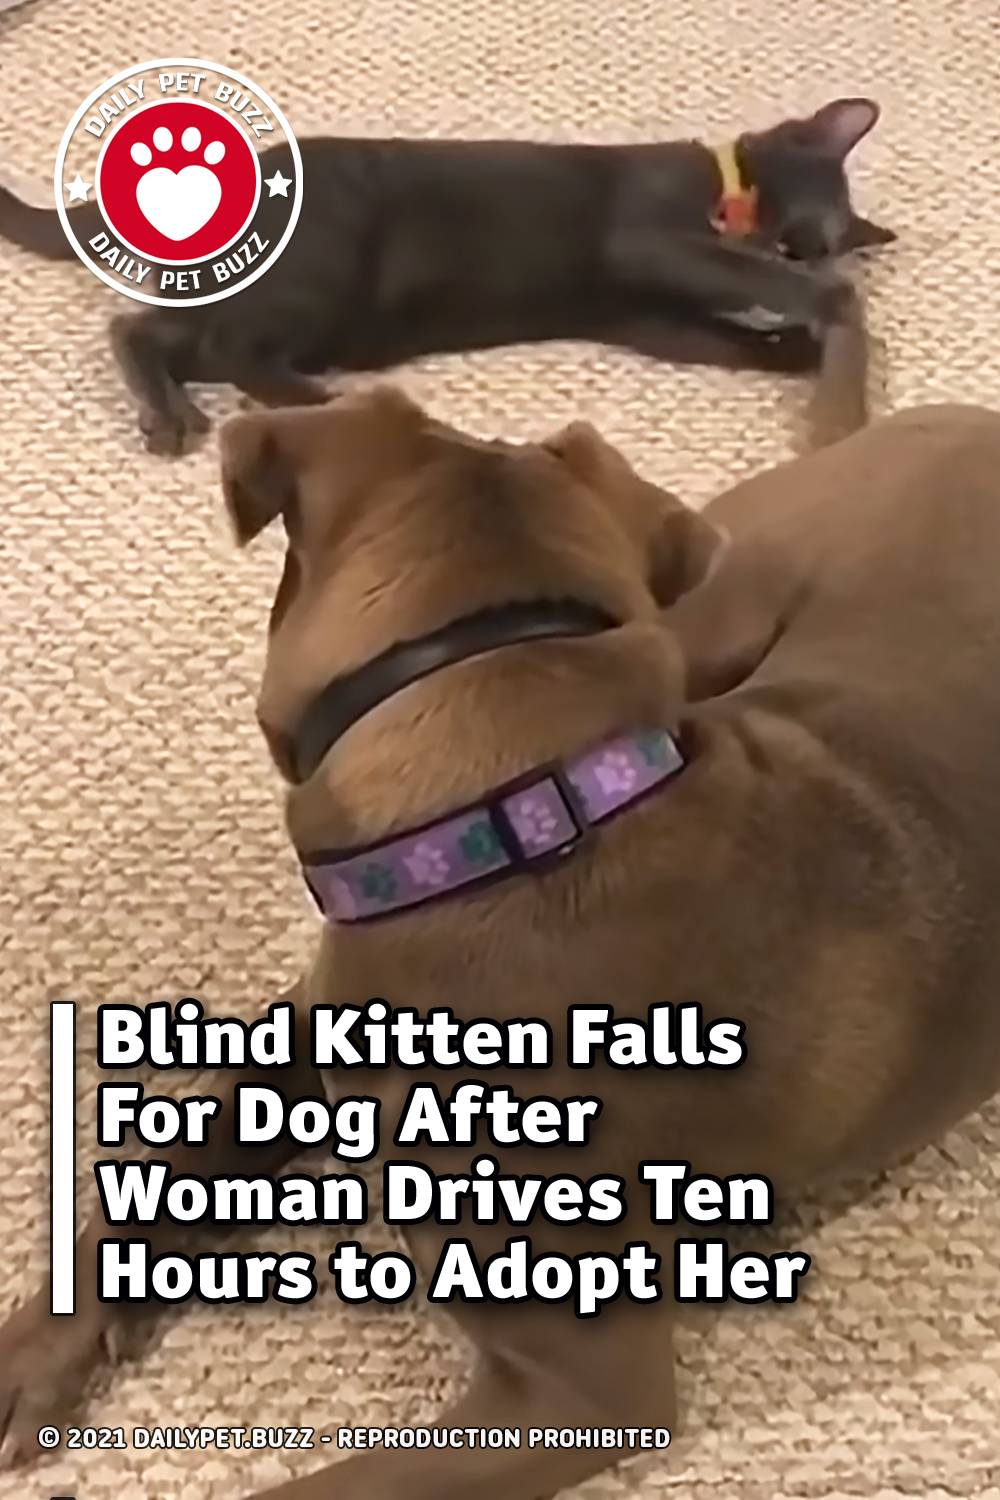 Blind Kitten Falls For Dog After Woman Drives Ten Hours to Adopt Her